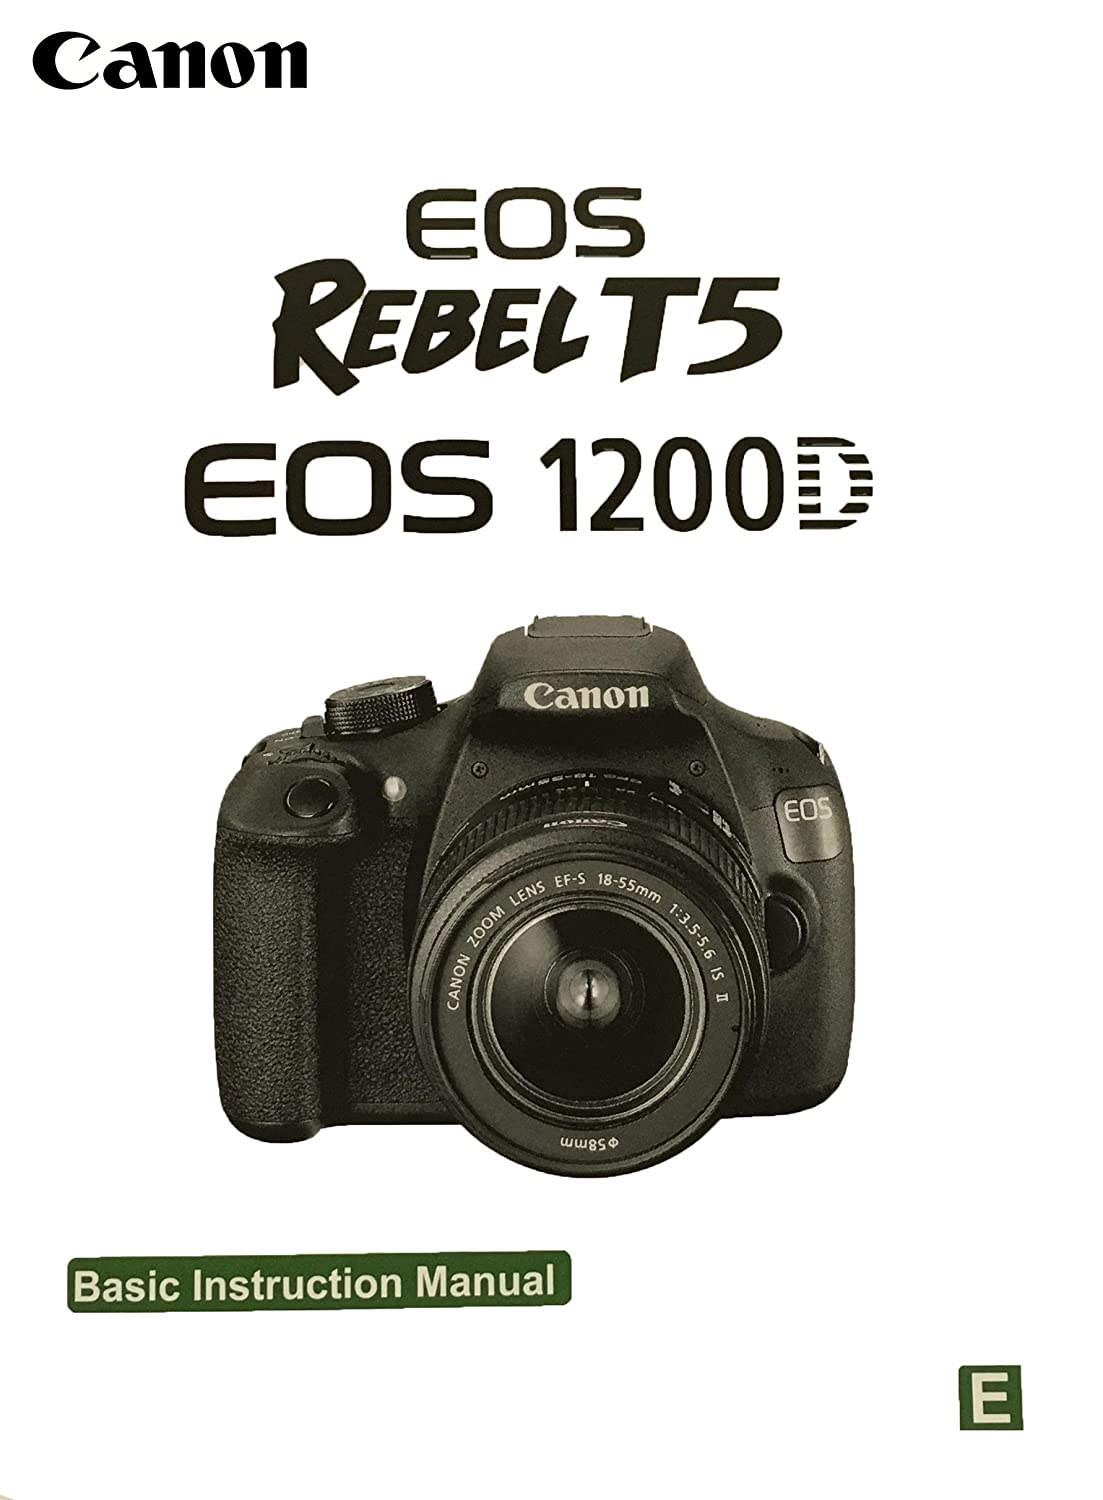 Amazon.com : Canon EOS Rebel T5 Basic Instruction Manual : Camera & Photo